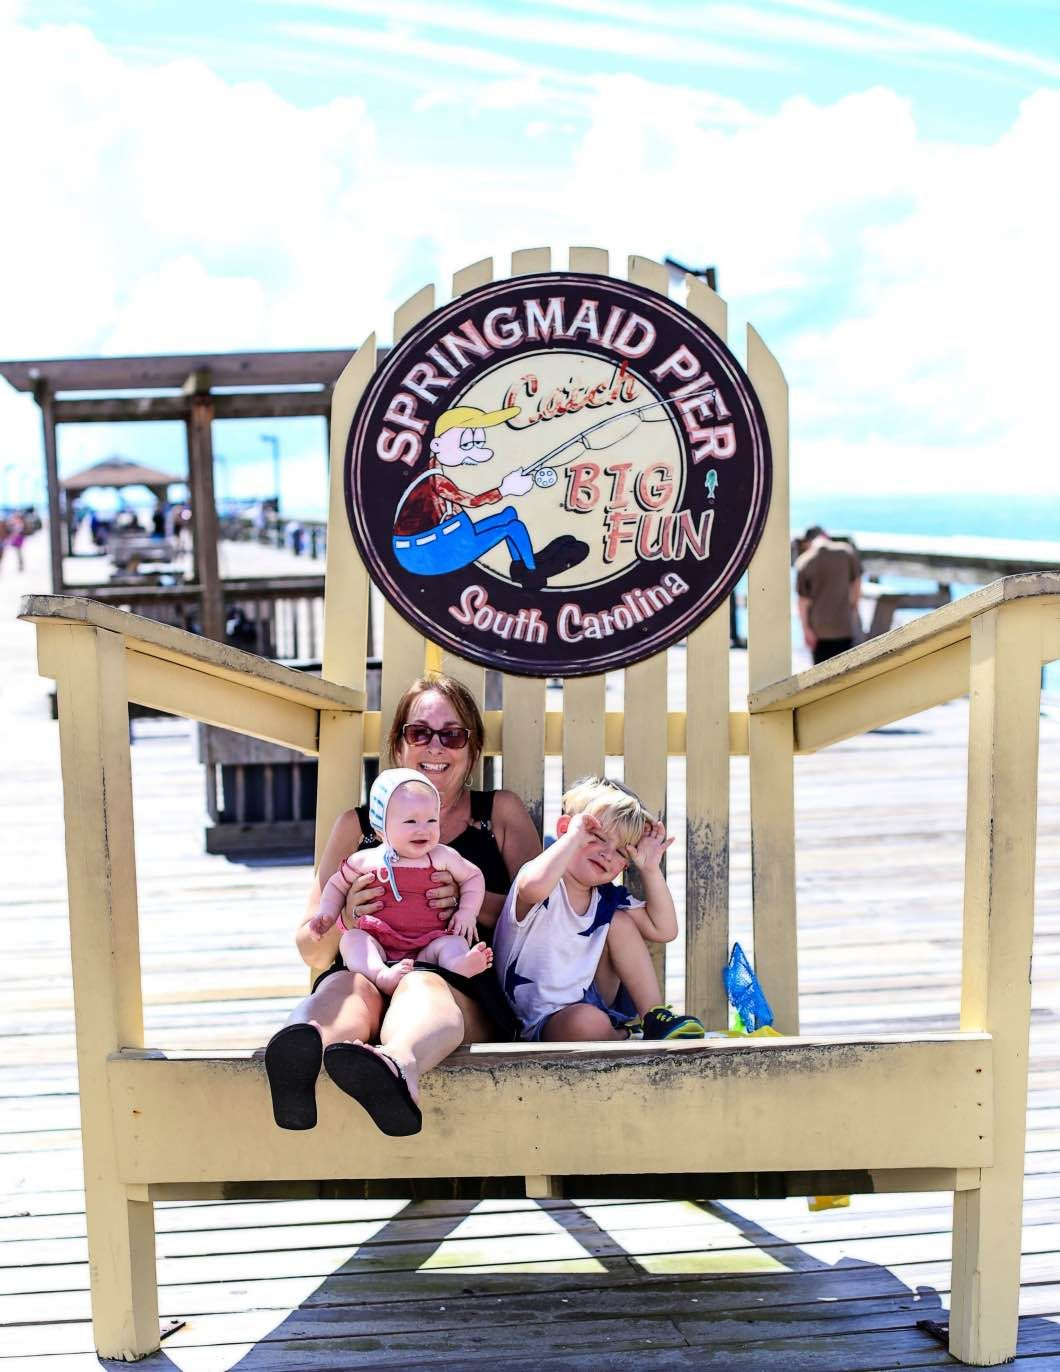 Joe S Retirement Blog Myrtle Beach South Carolina Usa